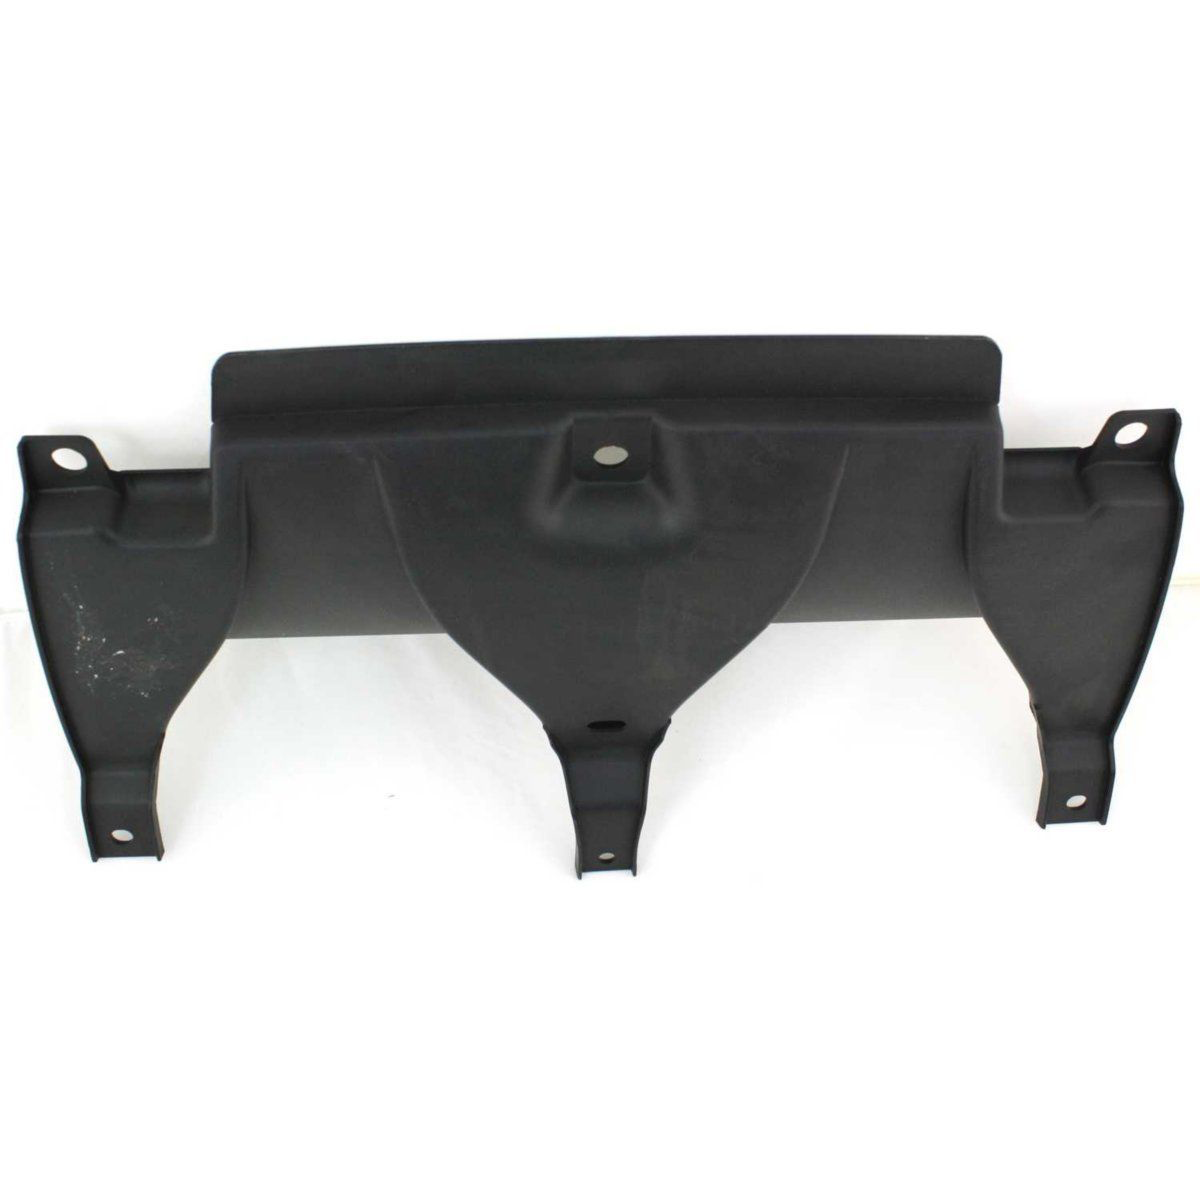 2003-2009 LEXUS GX470 Front Bumper Cover Lower Painted to Match